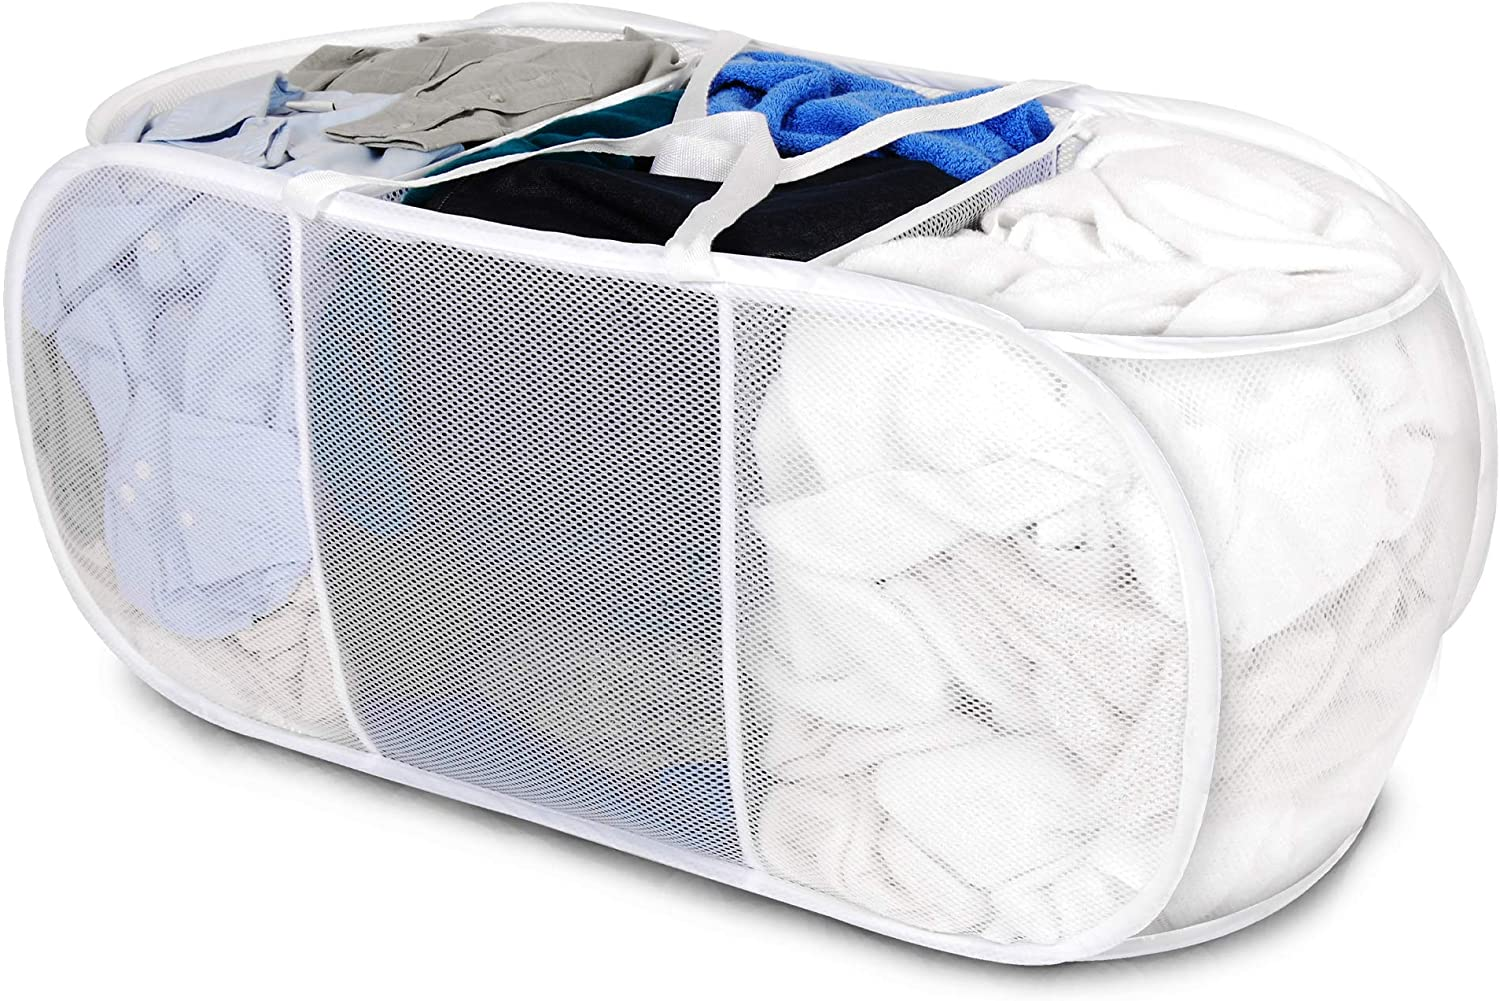 Smart Design Deluxe Mesh Pop Up 3 Compartment Laundry Sorter Hamper Basket - VentilAir Fabric Collapsible Design - for Clothes & Laundry - Home Organization (Holds 6 Loads) (33 x 15 Inch) [White]